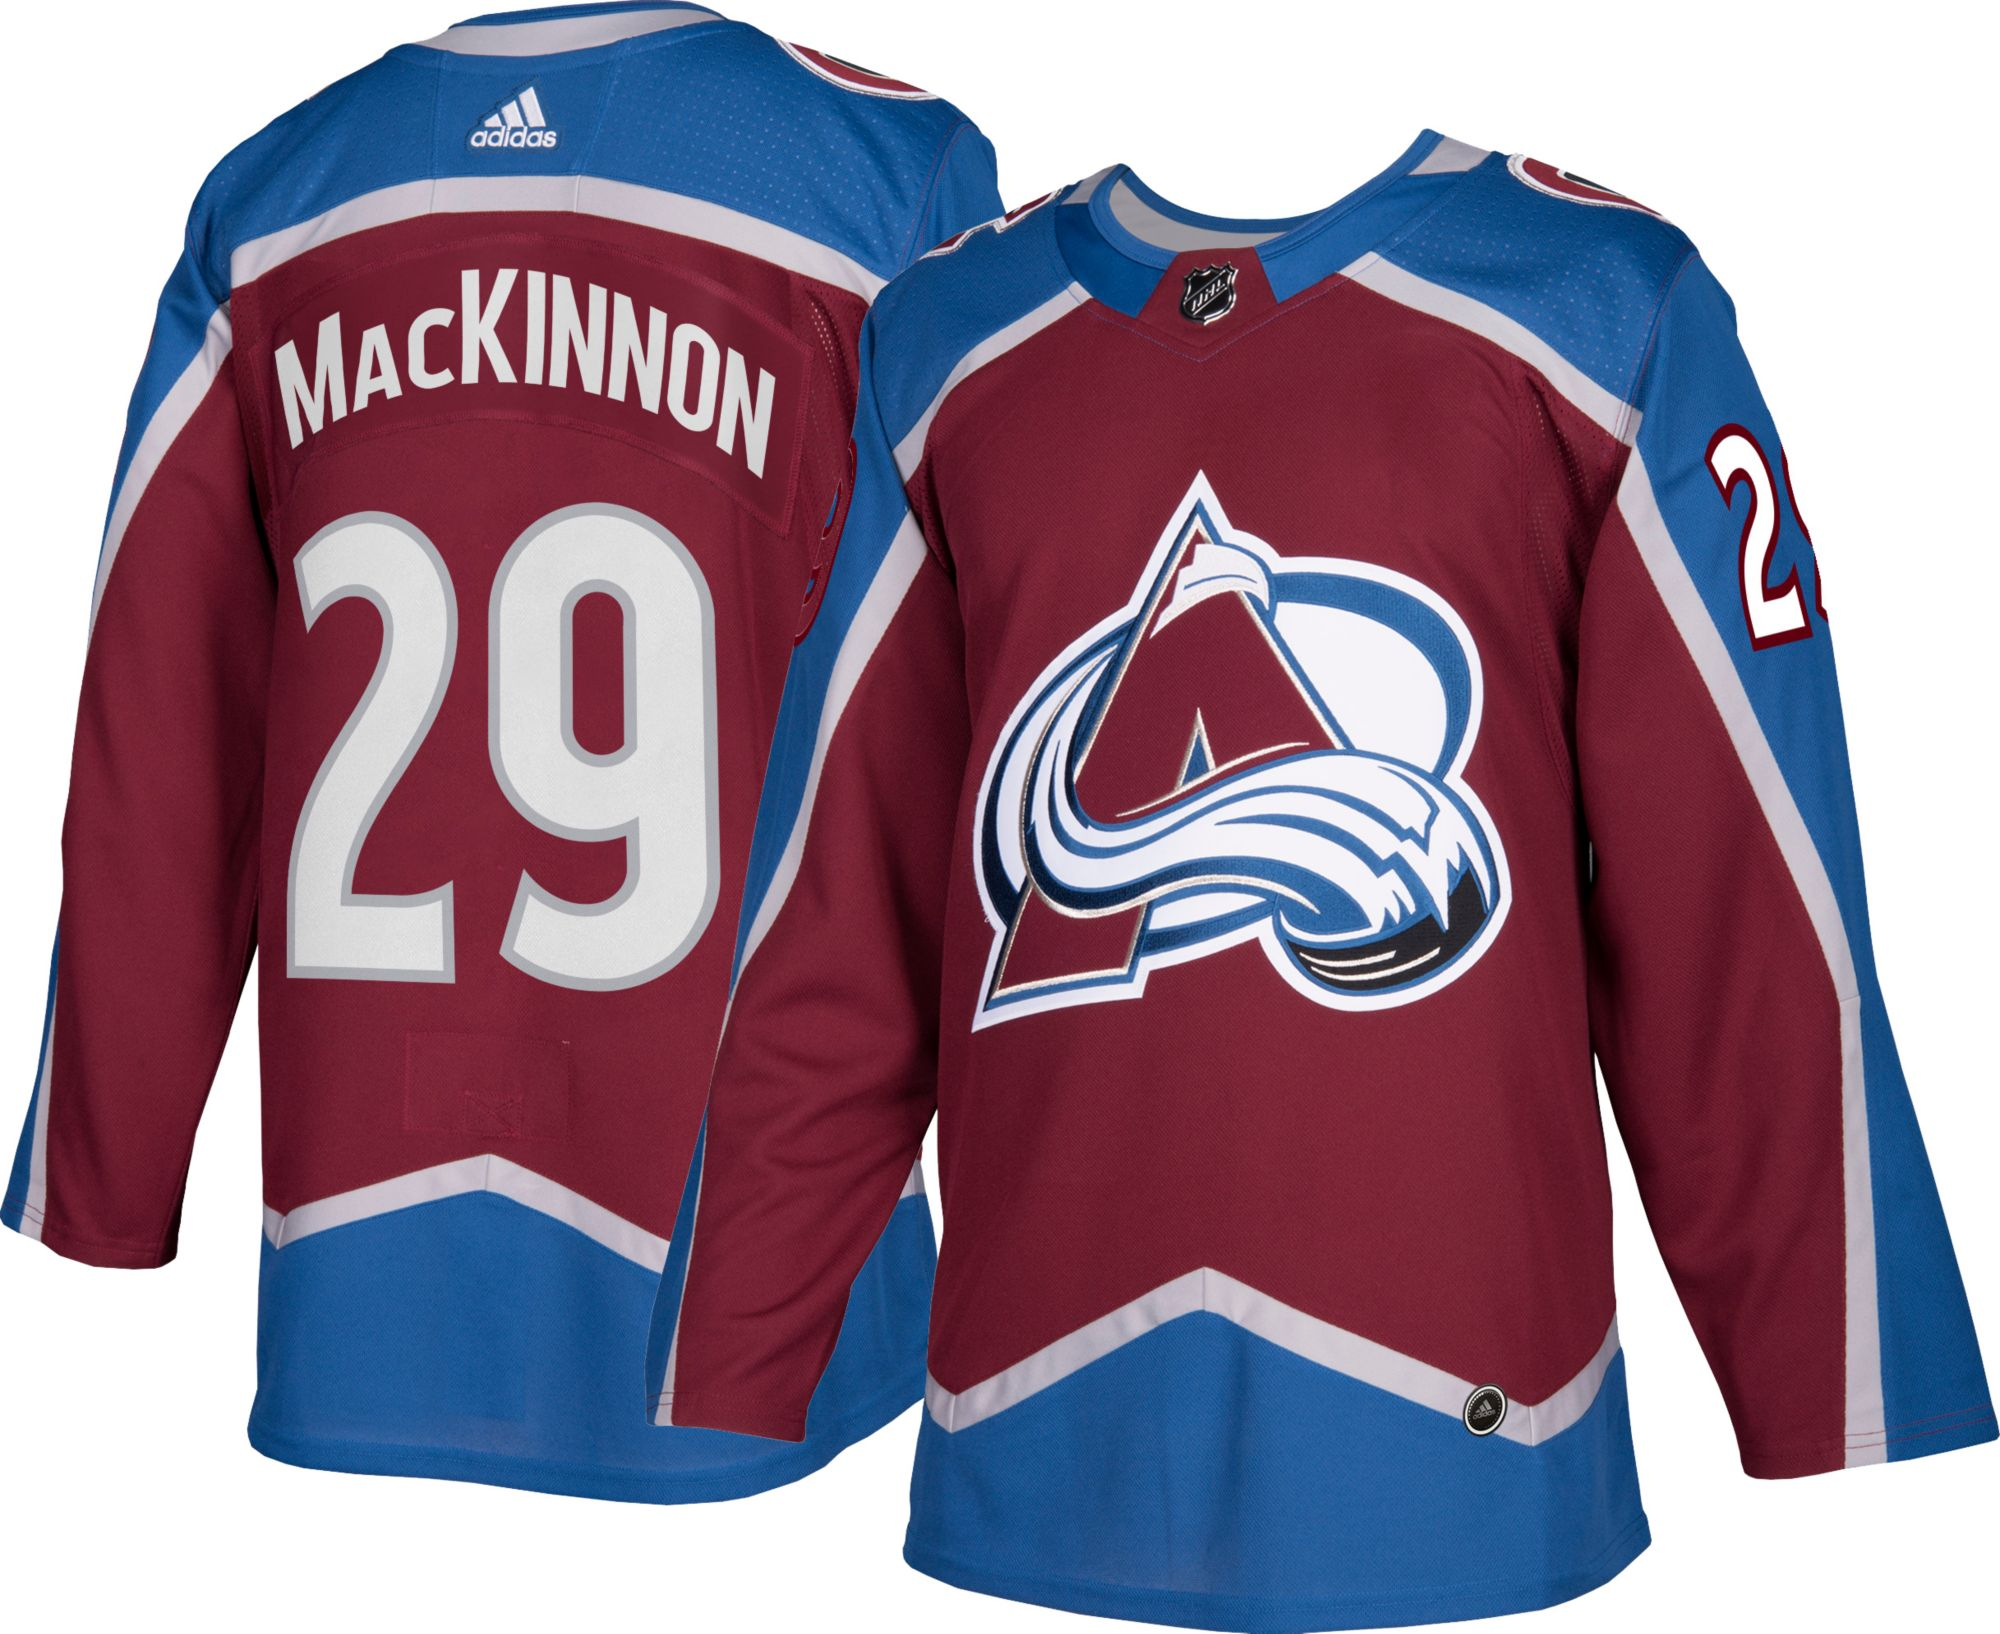 0c814d95d 29 blue alternate authentic reebok colorado avalanche nhl jersey 77338  fcf42  ireland adidas mens colorado avalanche nathan mackinnon 29 authentic  pro home ...